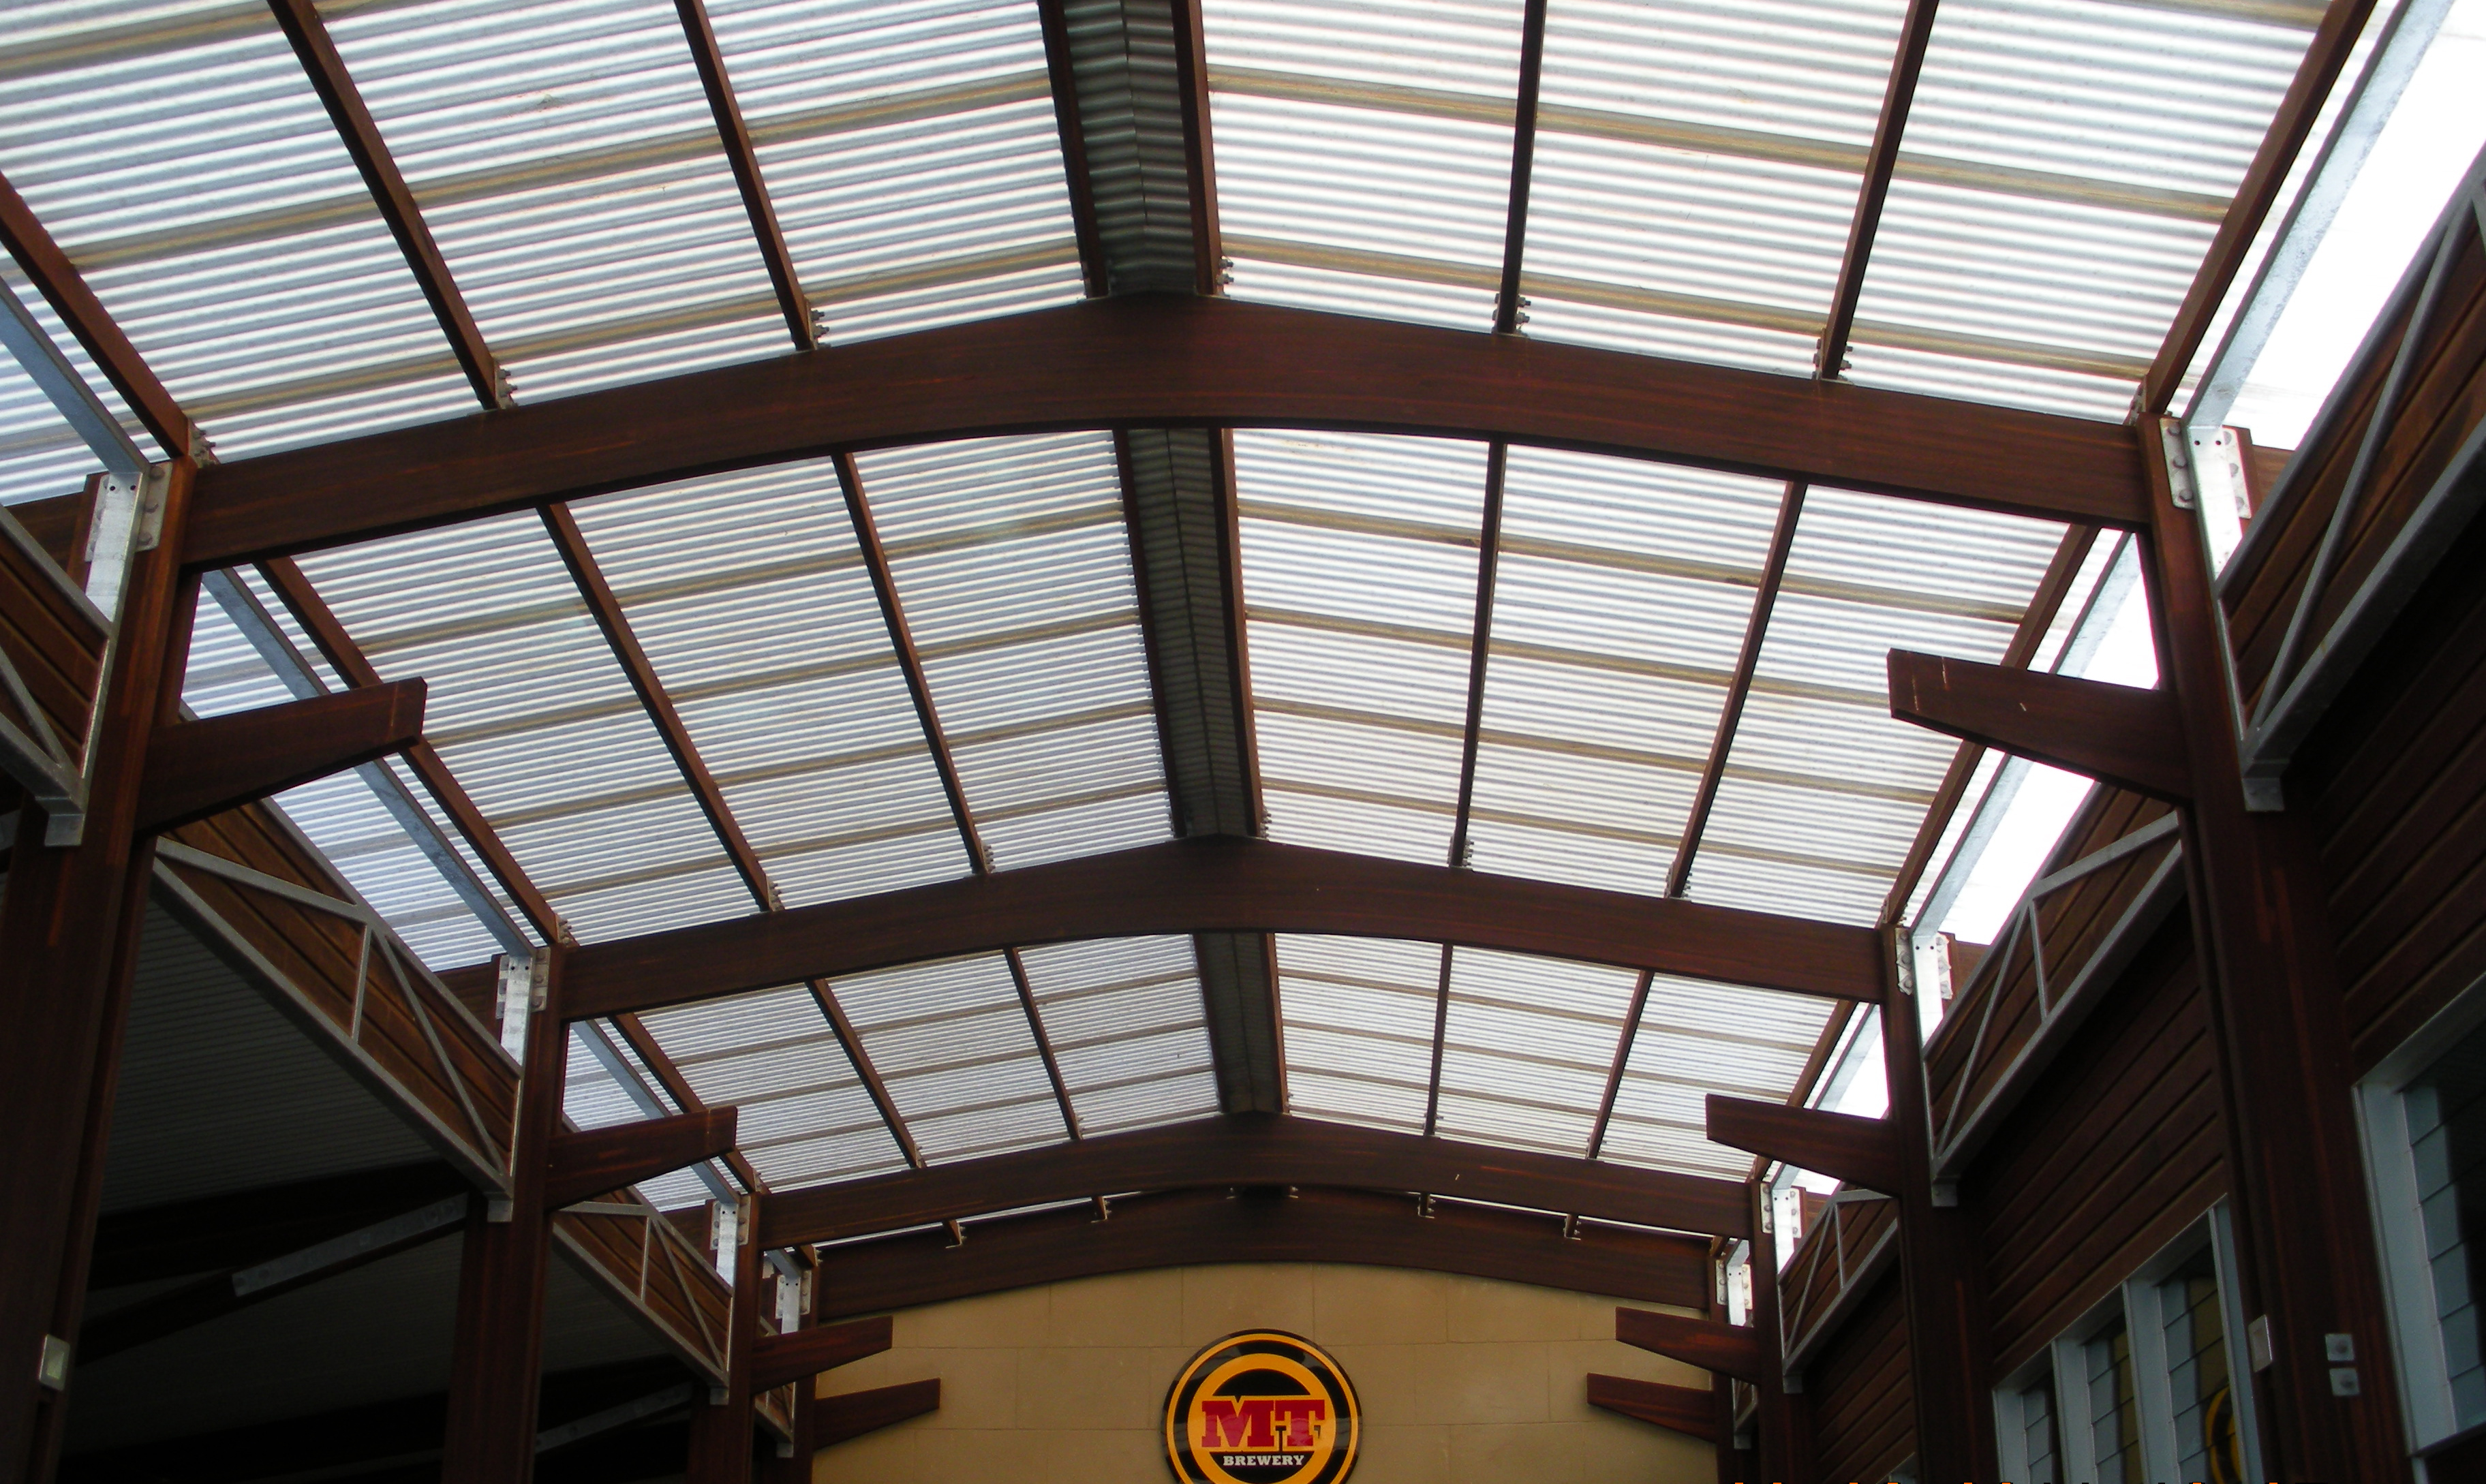 Polycarbonate Sheets Longer Than 3 6 M Polycarbonate Roofing